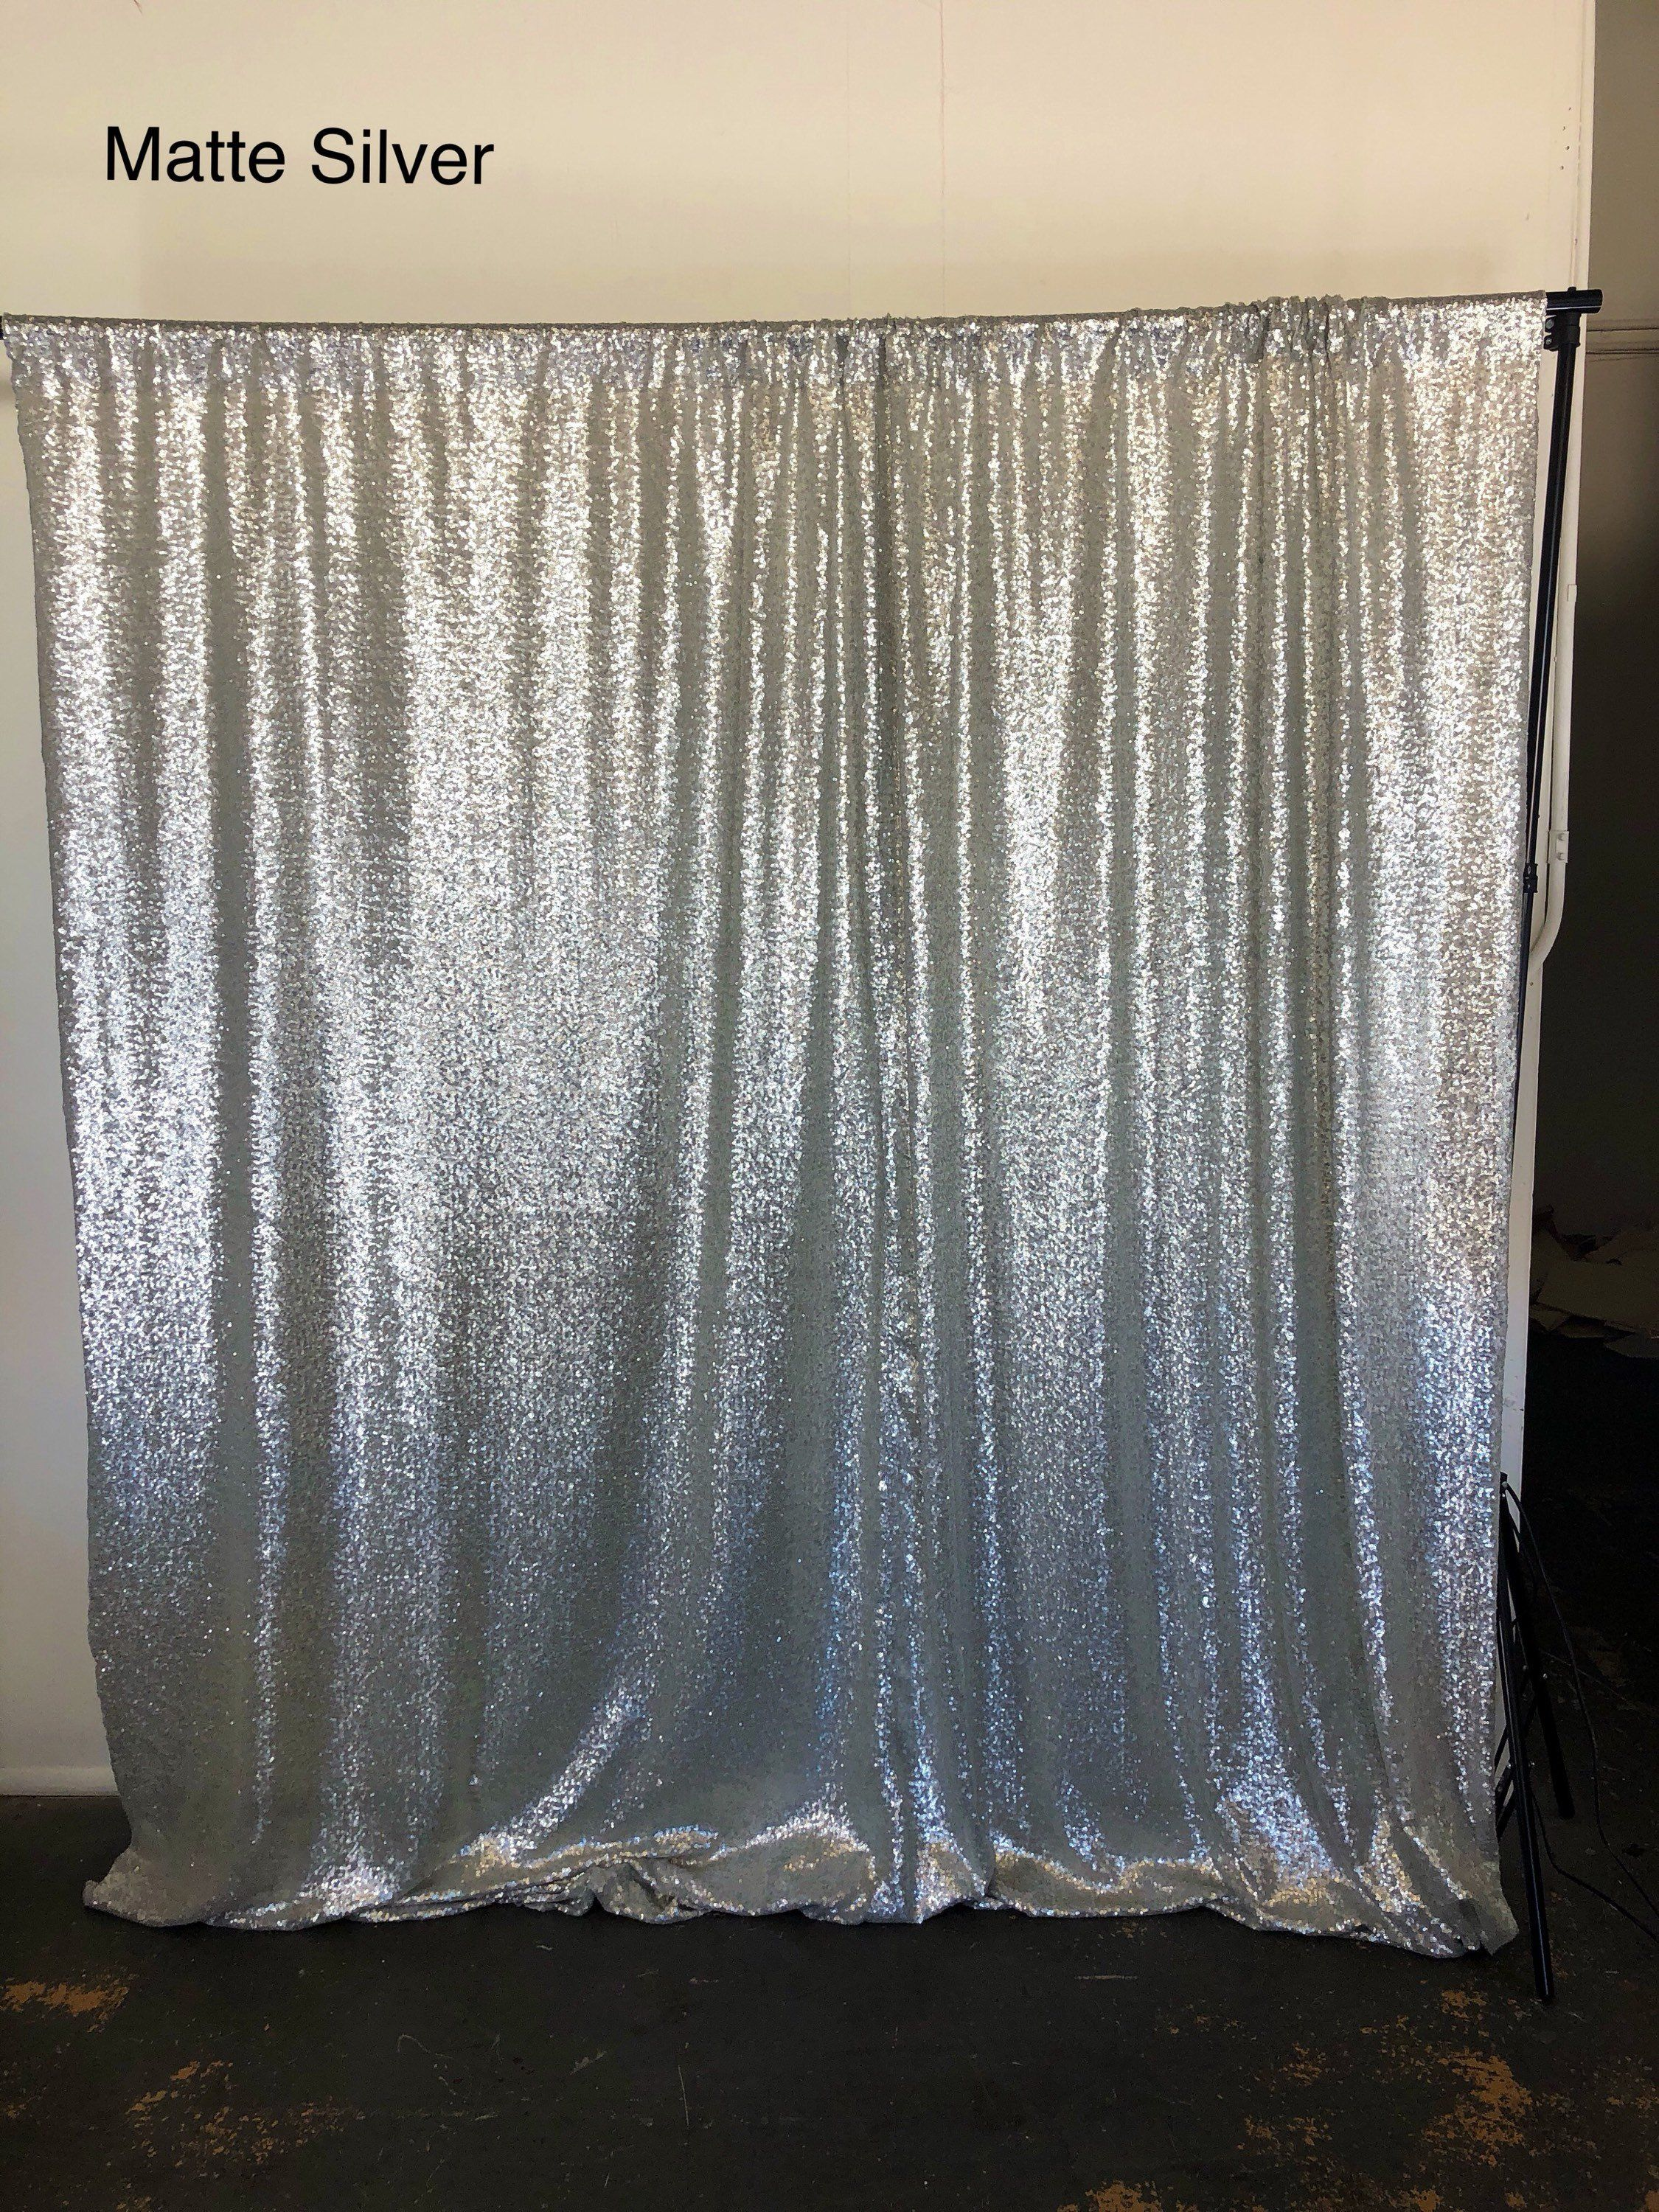 Photo Booth Sequin Curtains Gold Sequence Curtains Photo Backdrop